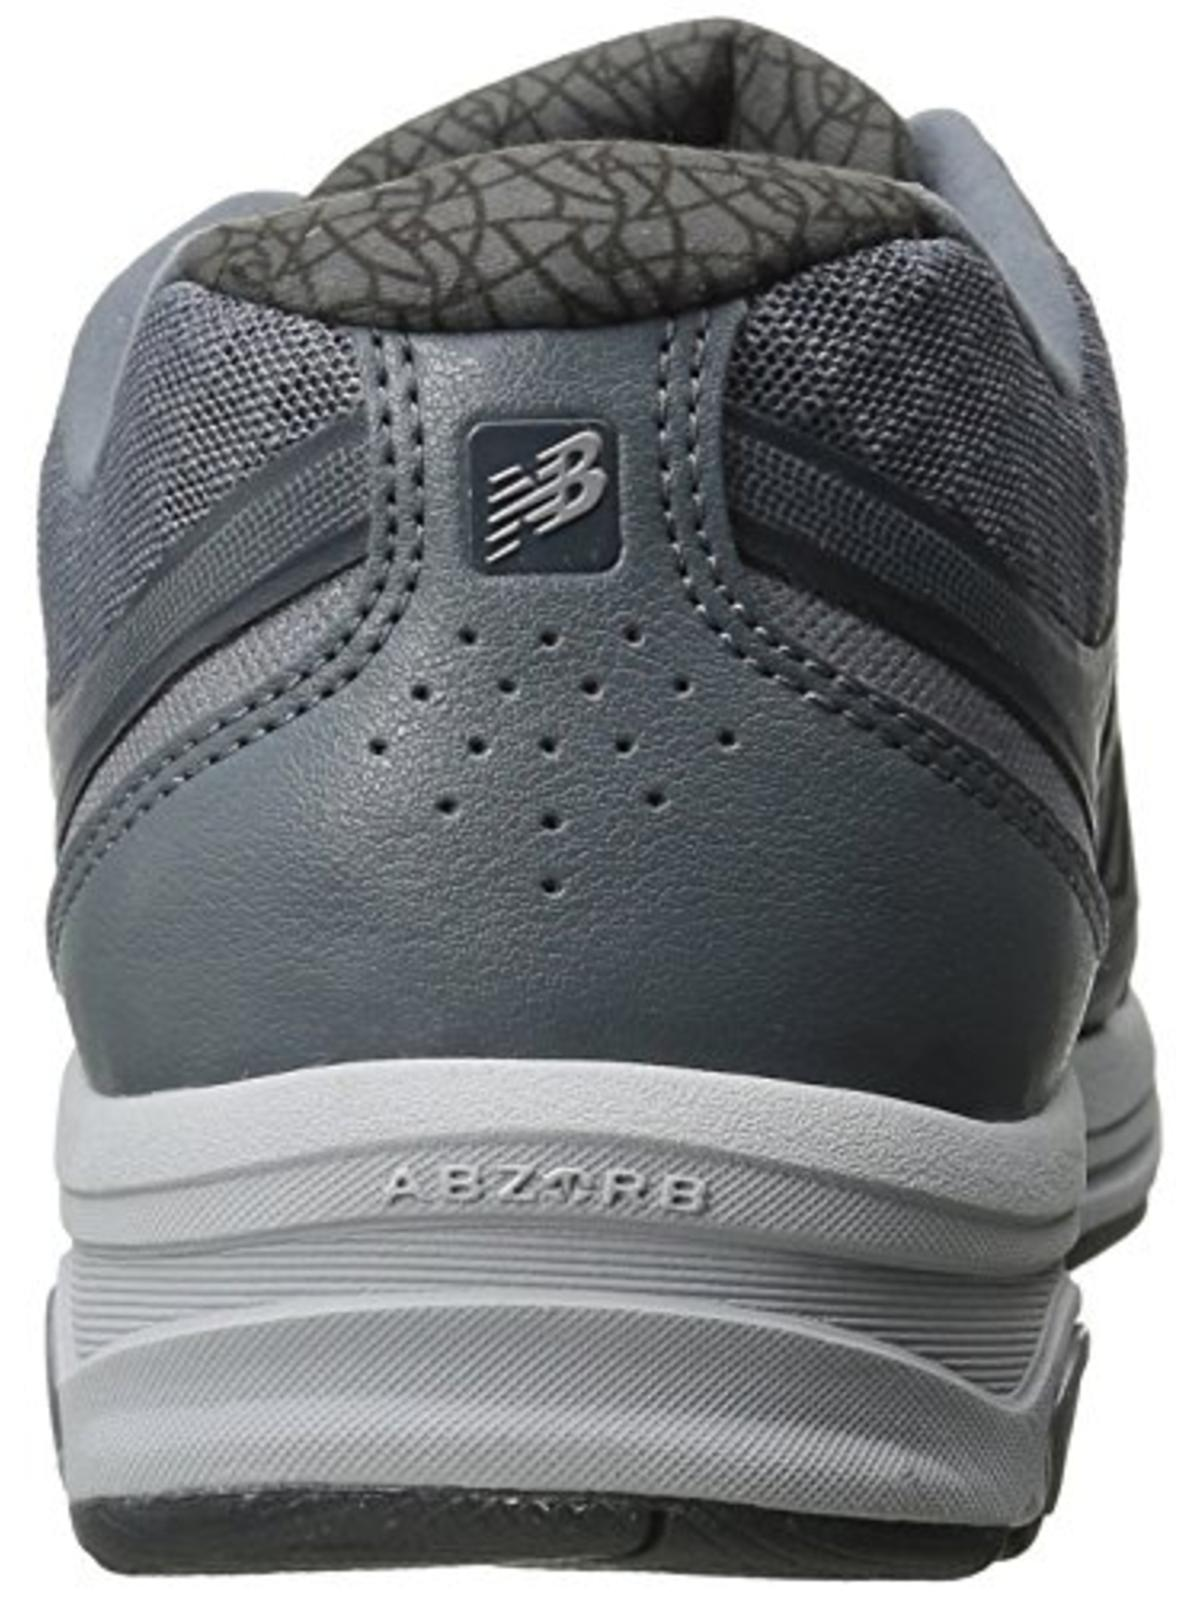 New Balance Mens 847v2 Non-Marking Rollbar Technology Walking Shoes